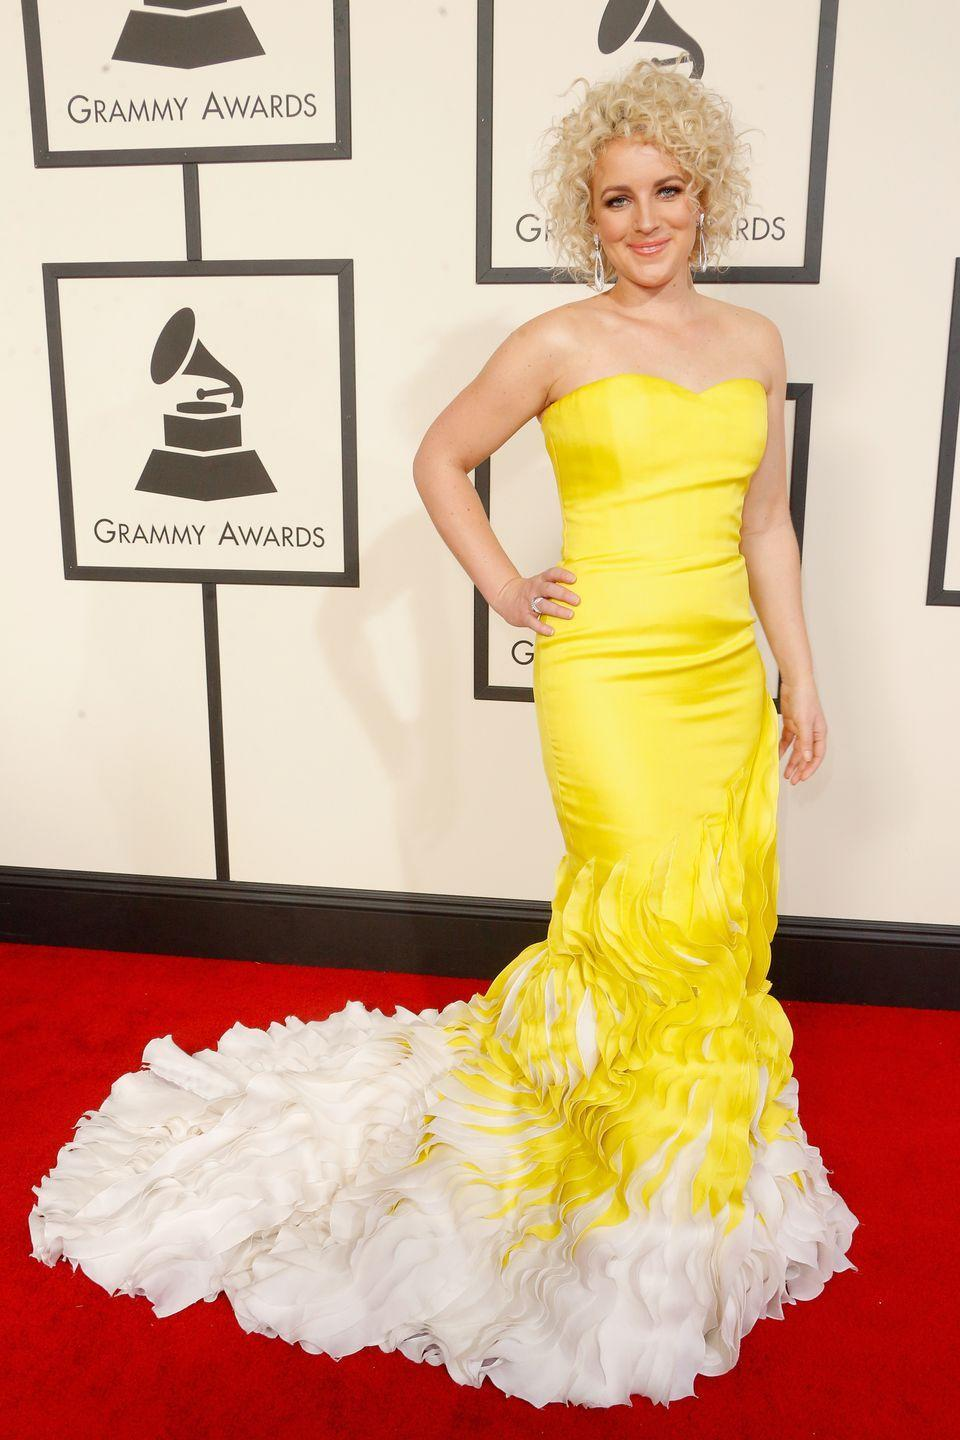 <p>Country singer Cam looked like an ultra-glam version of Belle in a ruffled yellow Georges Chakra gown at the 2016 Grammy Awards.</p>